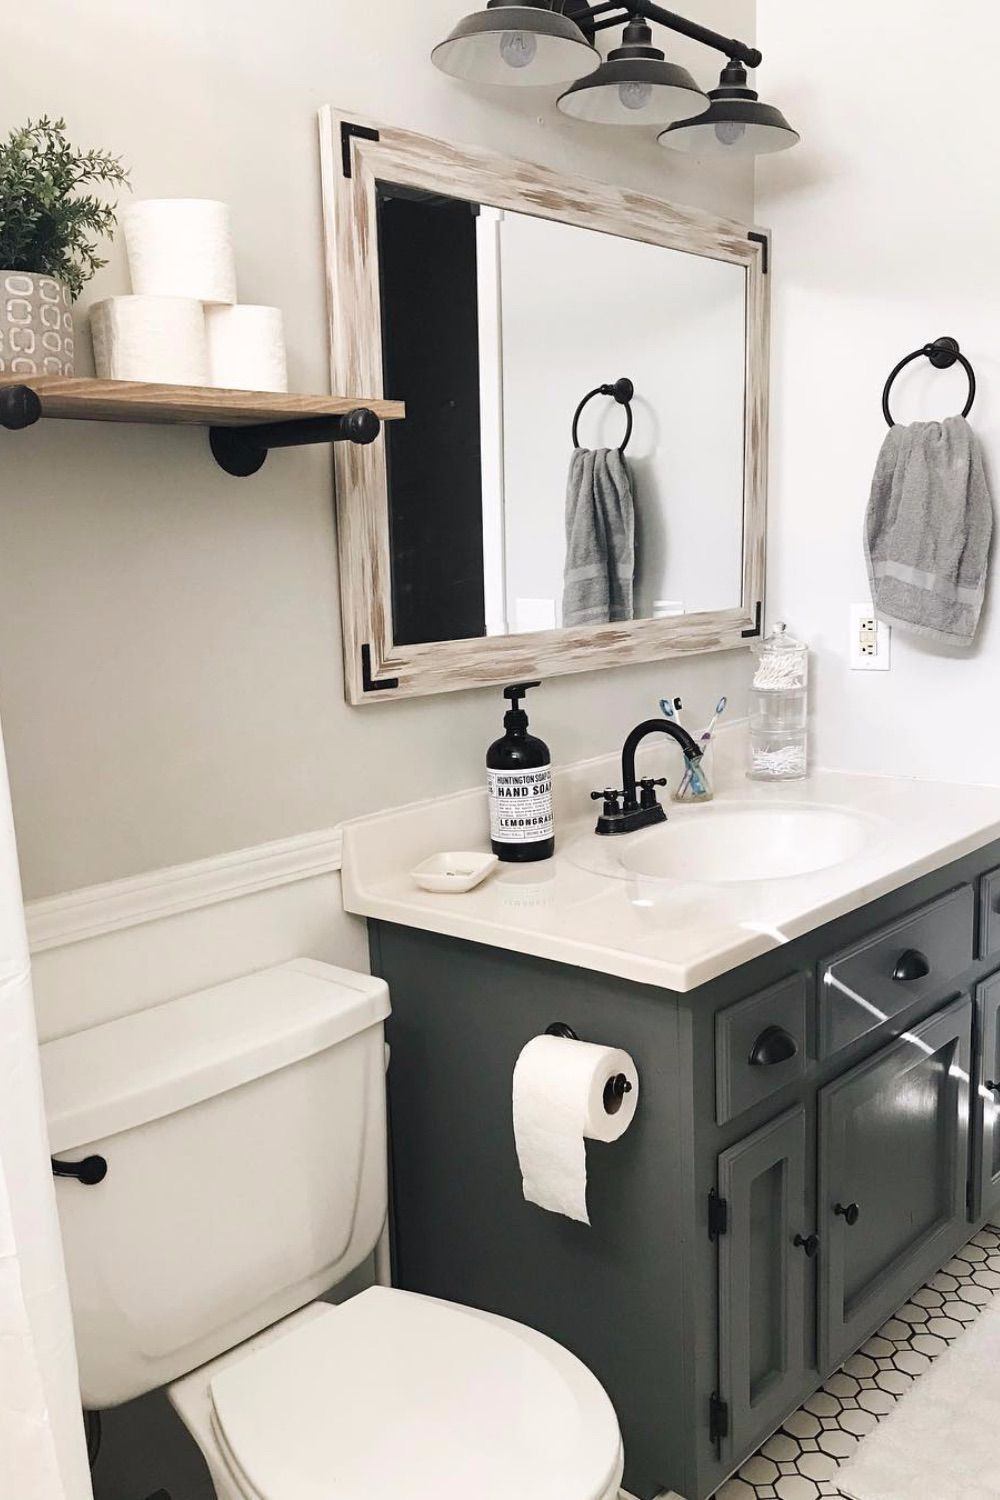 20 Guest Bathroom Ideas To Amaze Your Visitors Amaze Bathroom Guest Ideas Visitors In 2020 Guest Bathroom Design Small Bathroom Remodel Guest Bathrooms